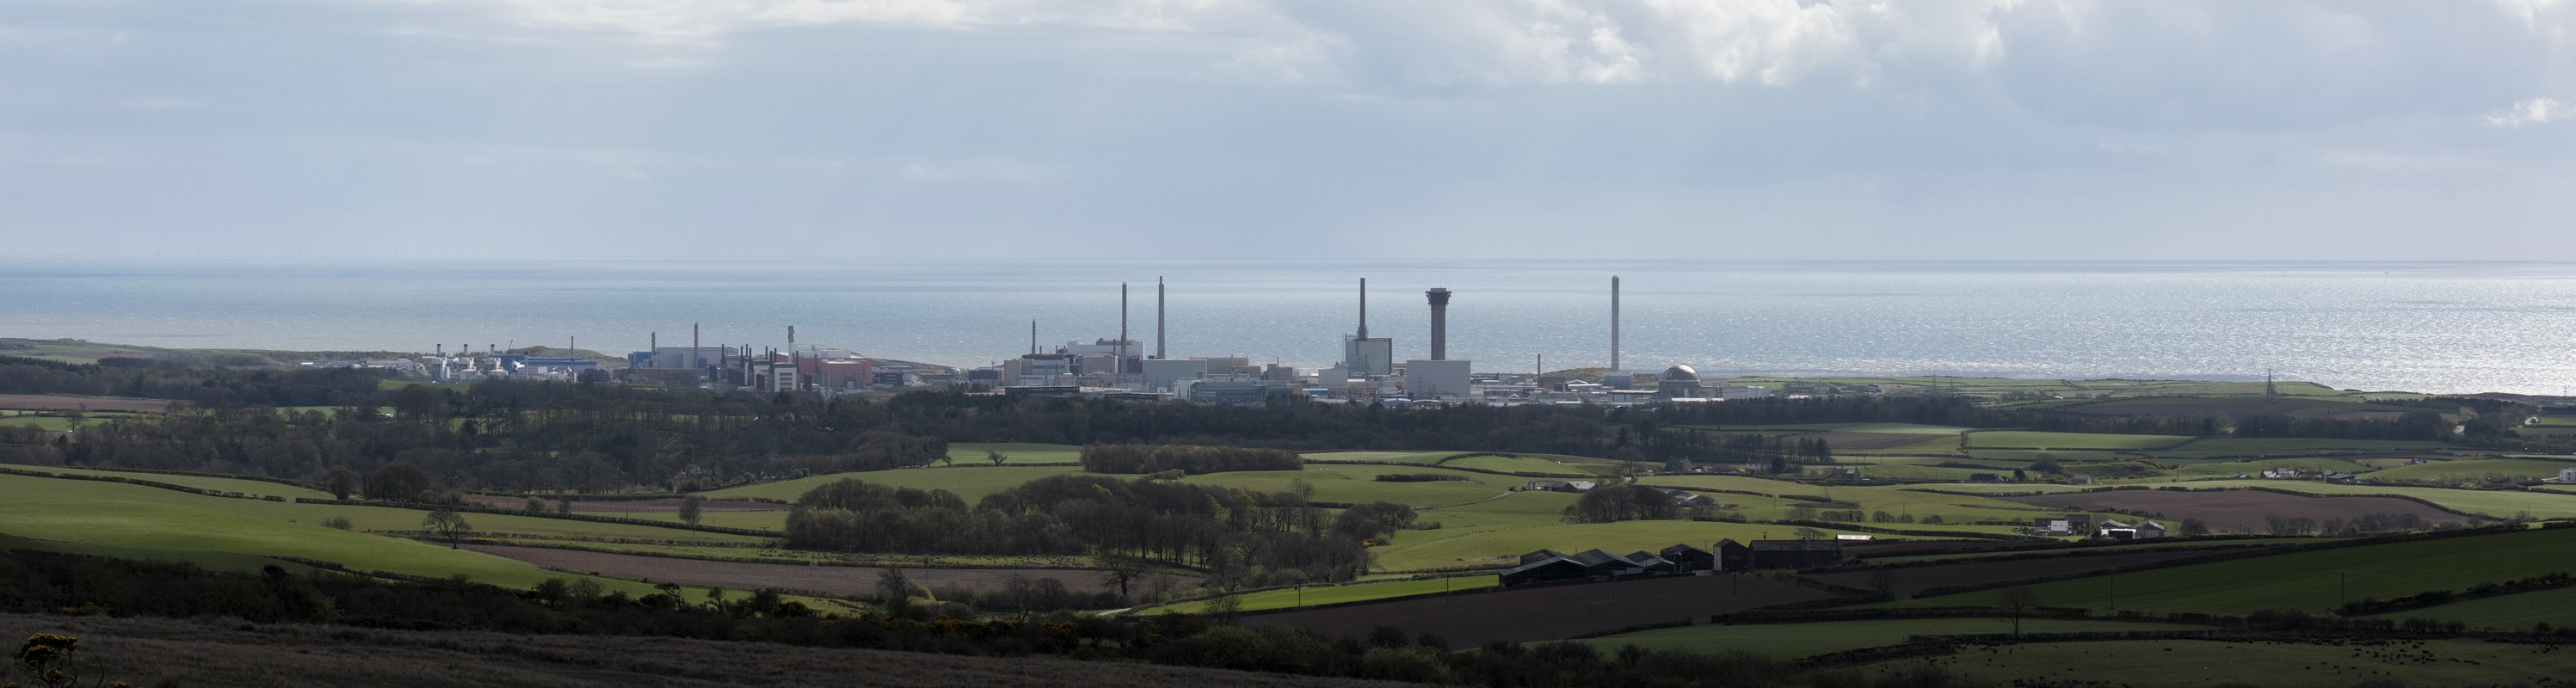 The Sellafield site viewed from Cold Fell, in the northern Pennines